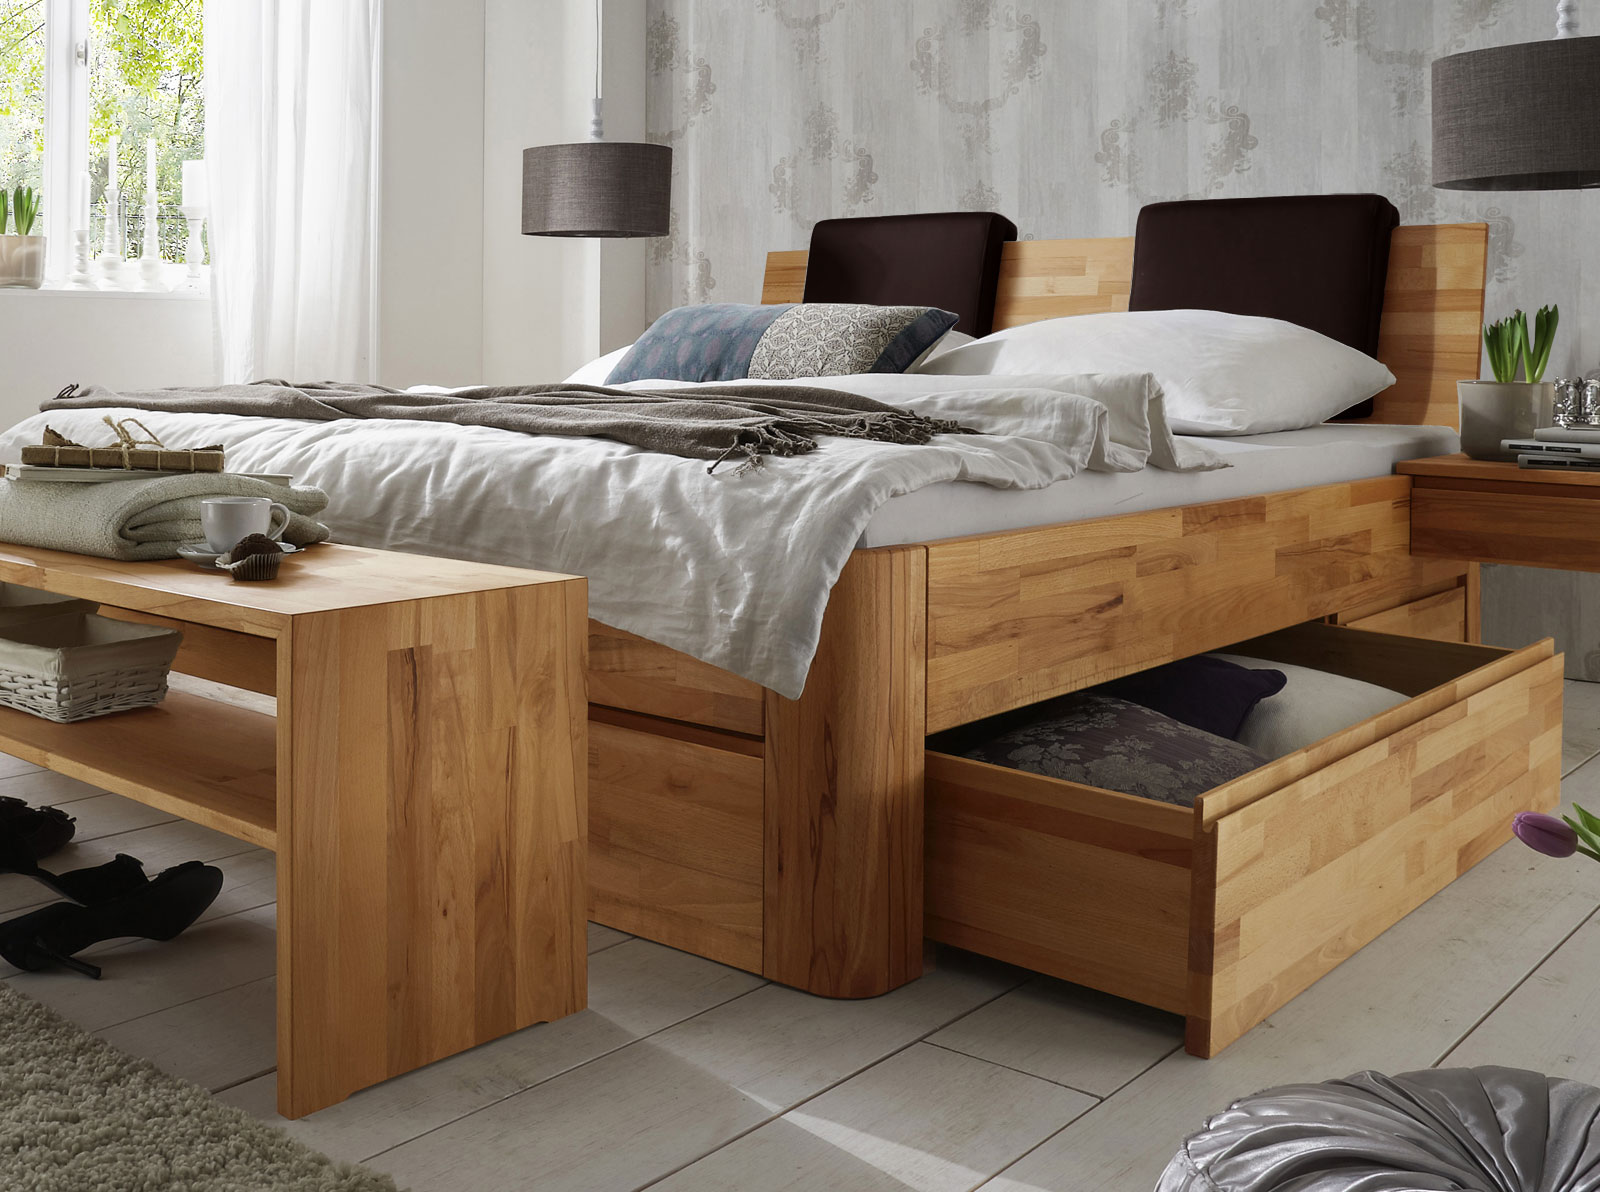 massivholzbett savin 200x200 wildeiche ge lt doppelbett. Black Bedroom Furniture Sets. Home Design Ideas